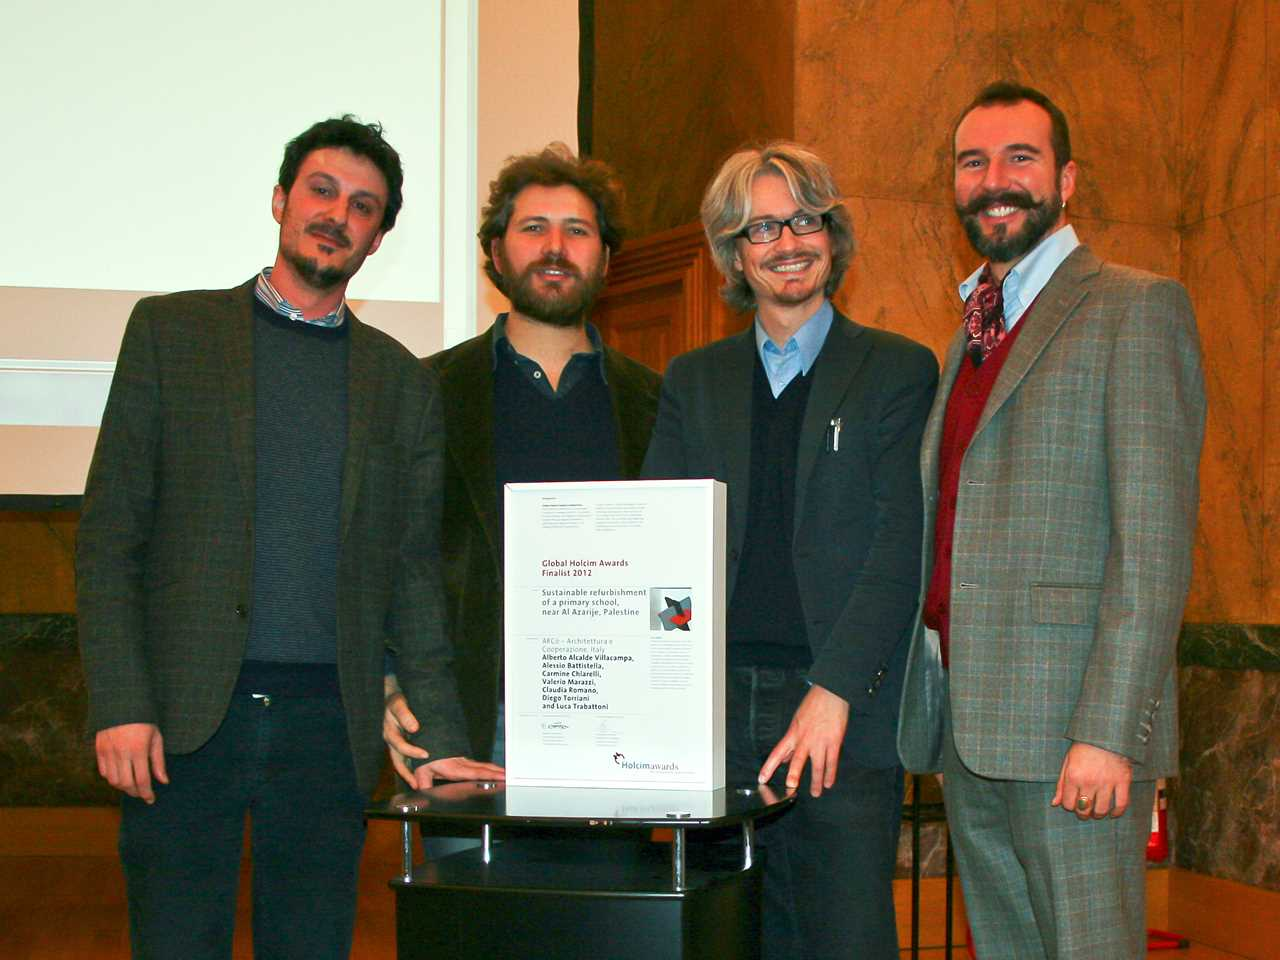 Global Holcim Awards 2012 finalist certificate handover – Milan, Italy